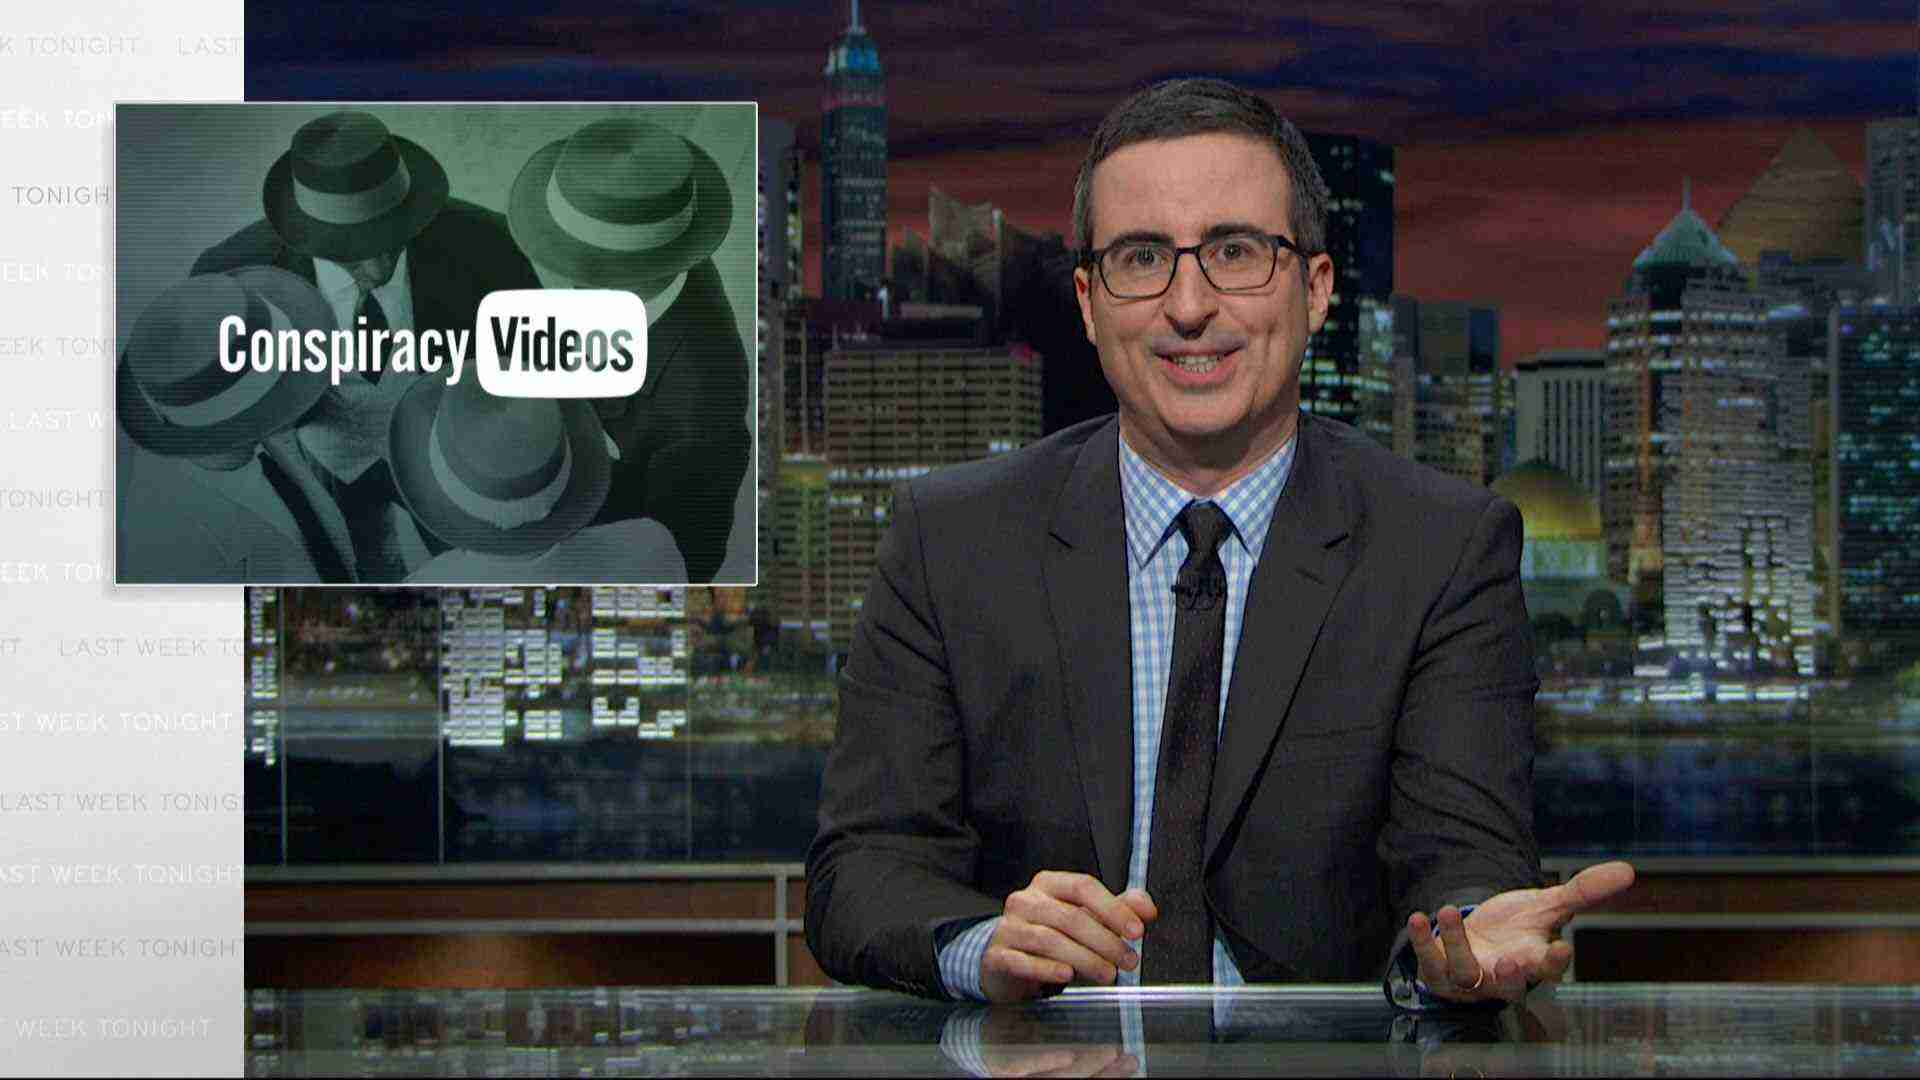 Conspiracies (Web Exclusive): Last Week Tonight with John Oliver (HBO)